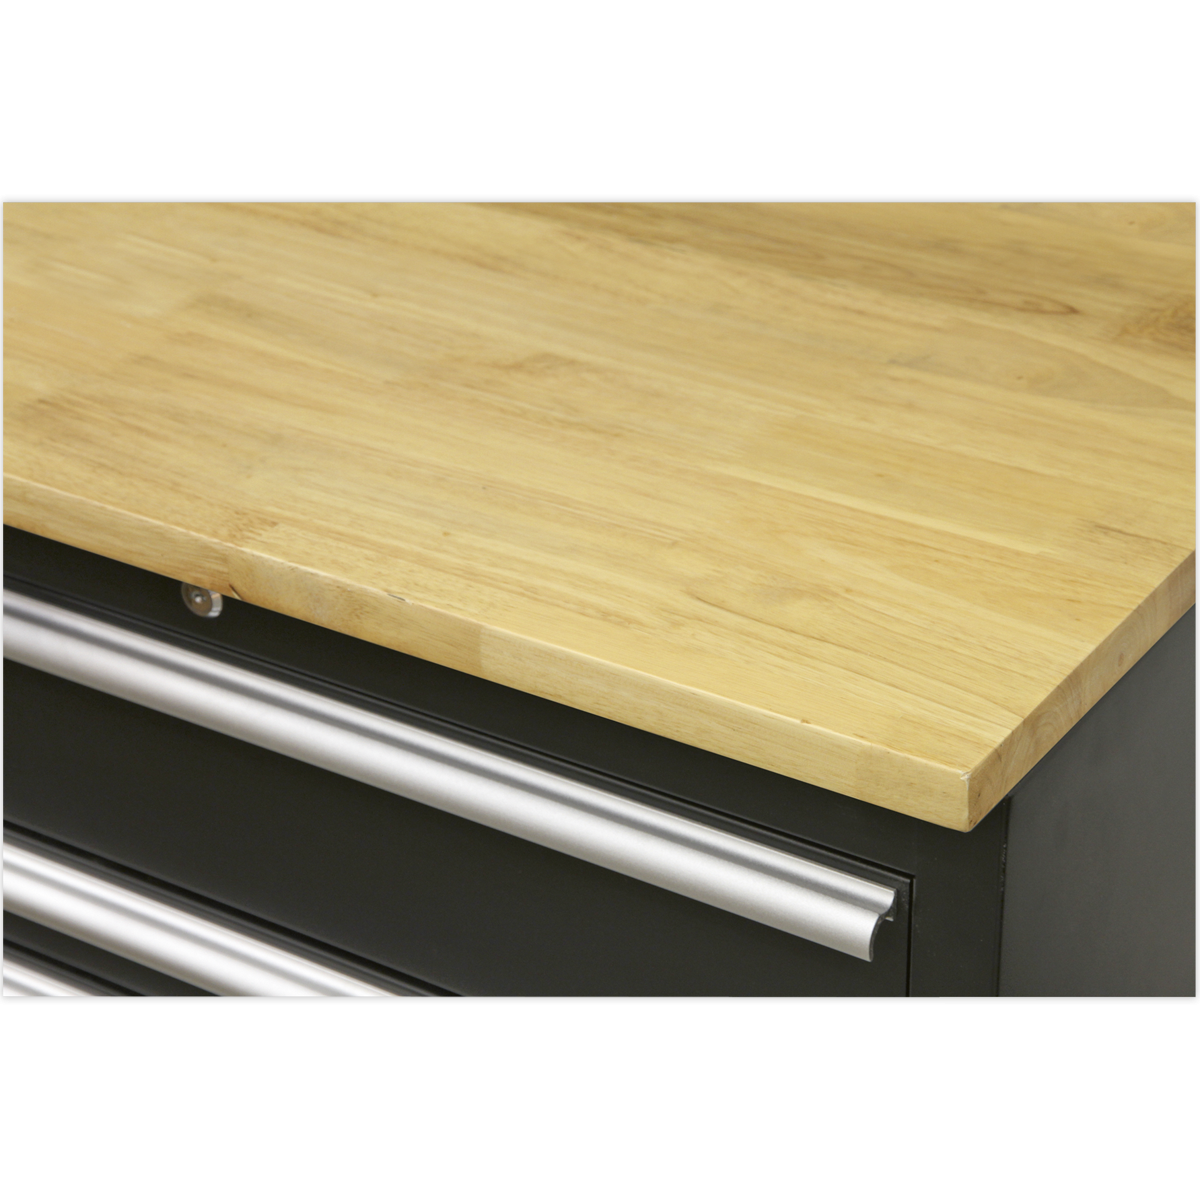 Sealey APMS06 Hardwood Worktop 775mm